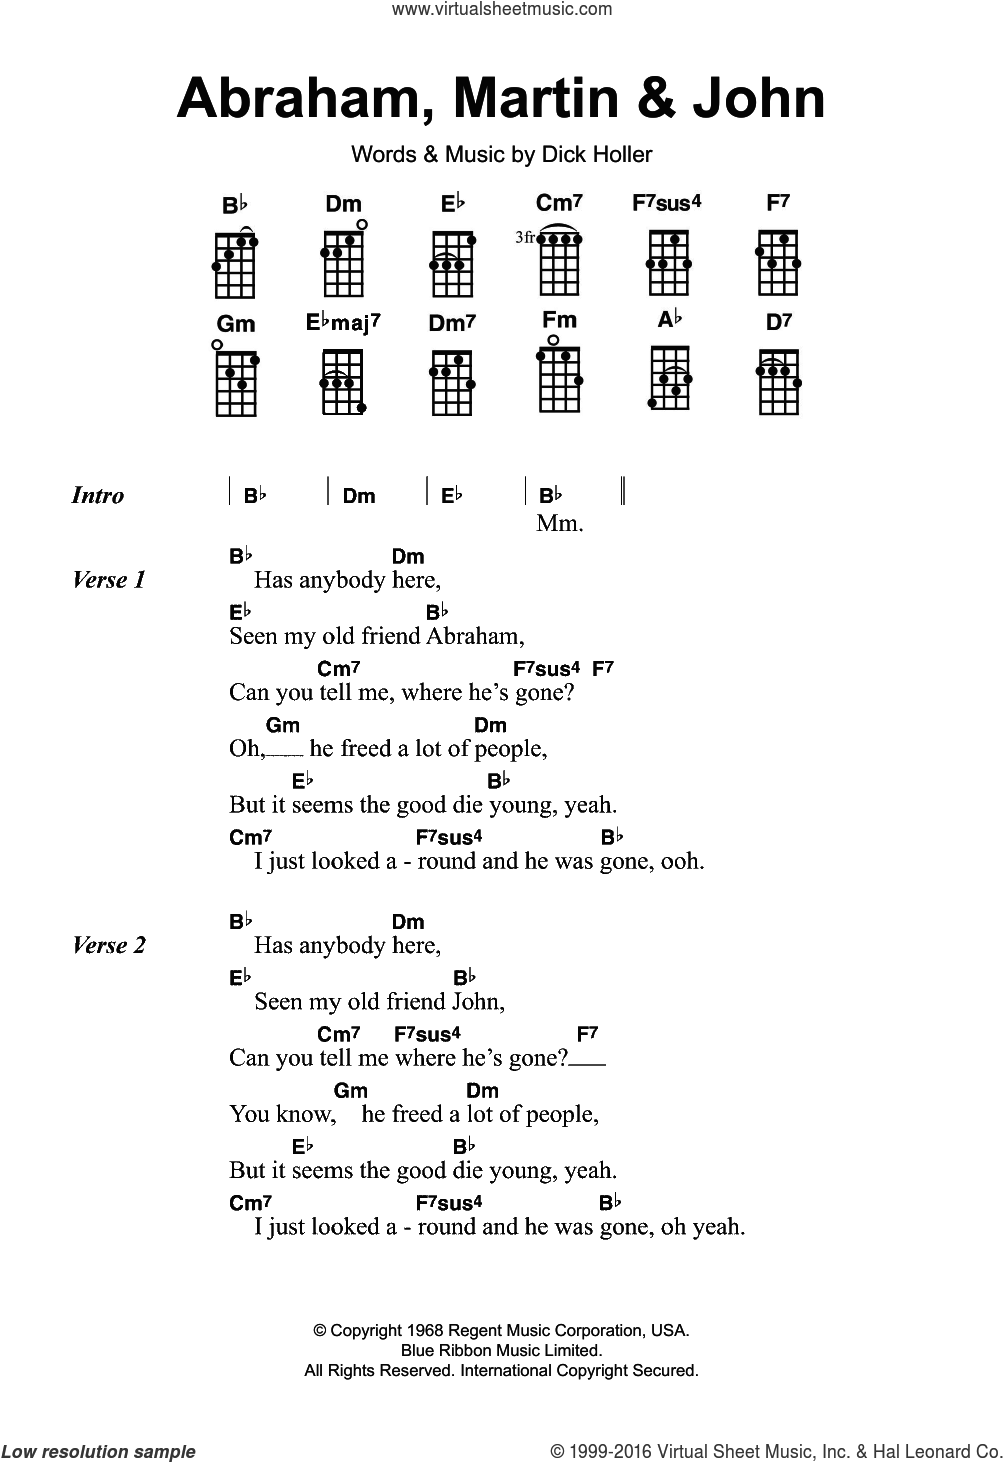 Abraham, Martin and John sheet music for ukulele by Marvin Gaye and Dick Holler, intermediate skill level